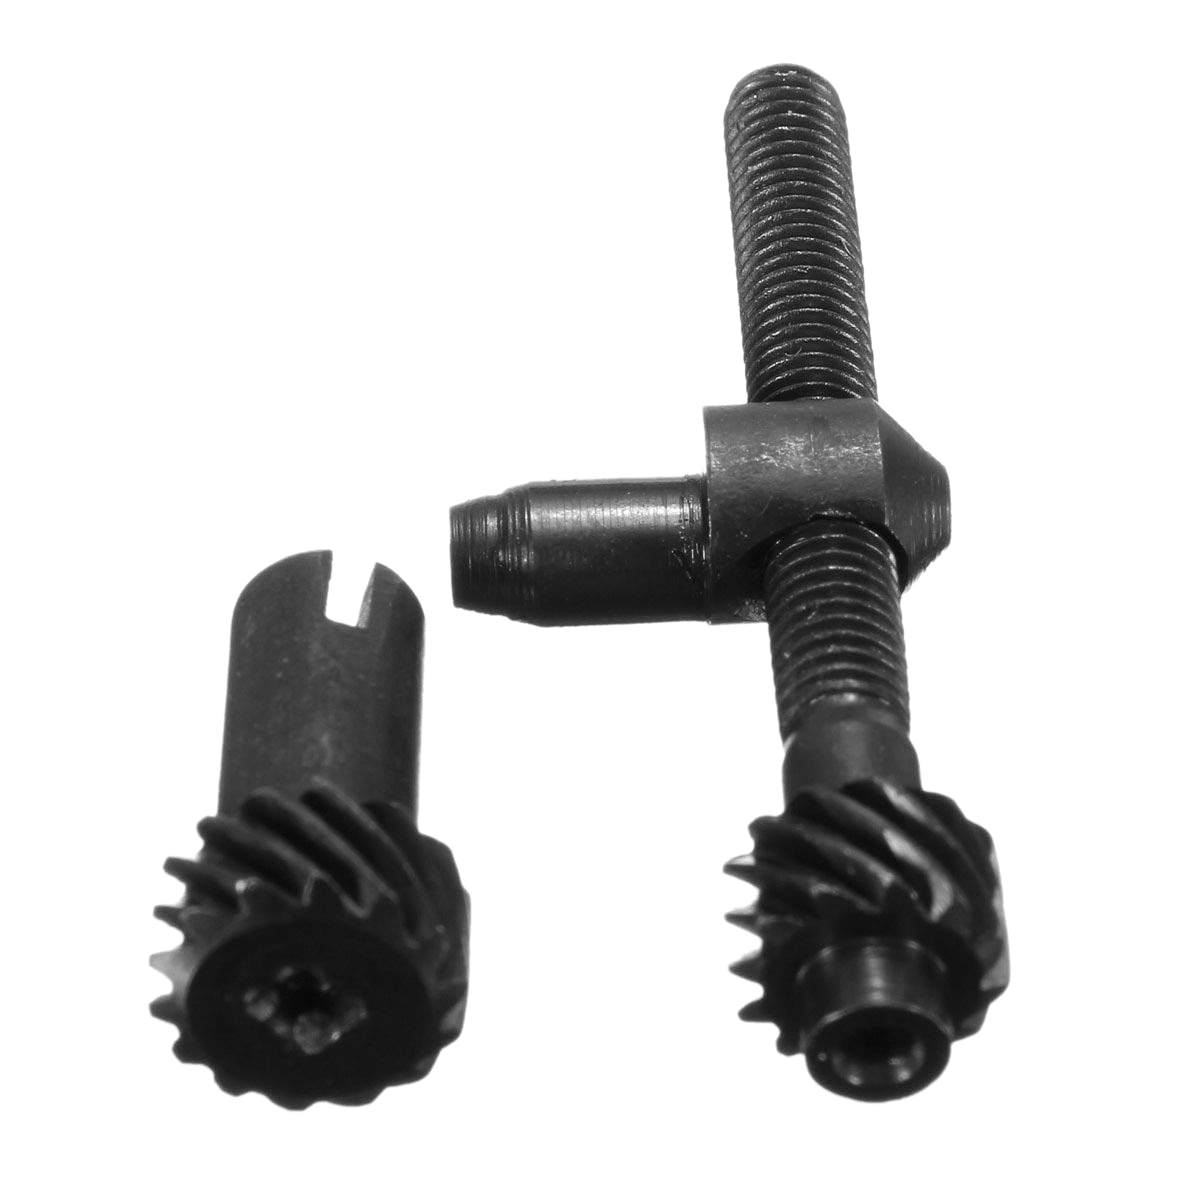 Hot SV-Chain Adjuster Tensioner Screw For Timberpro Lawnflite Chinese Chainsaw 2500 25cc